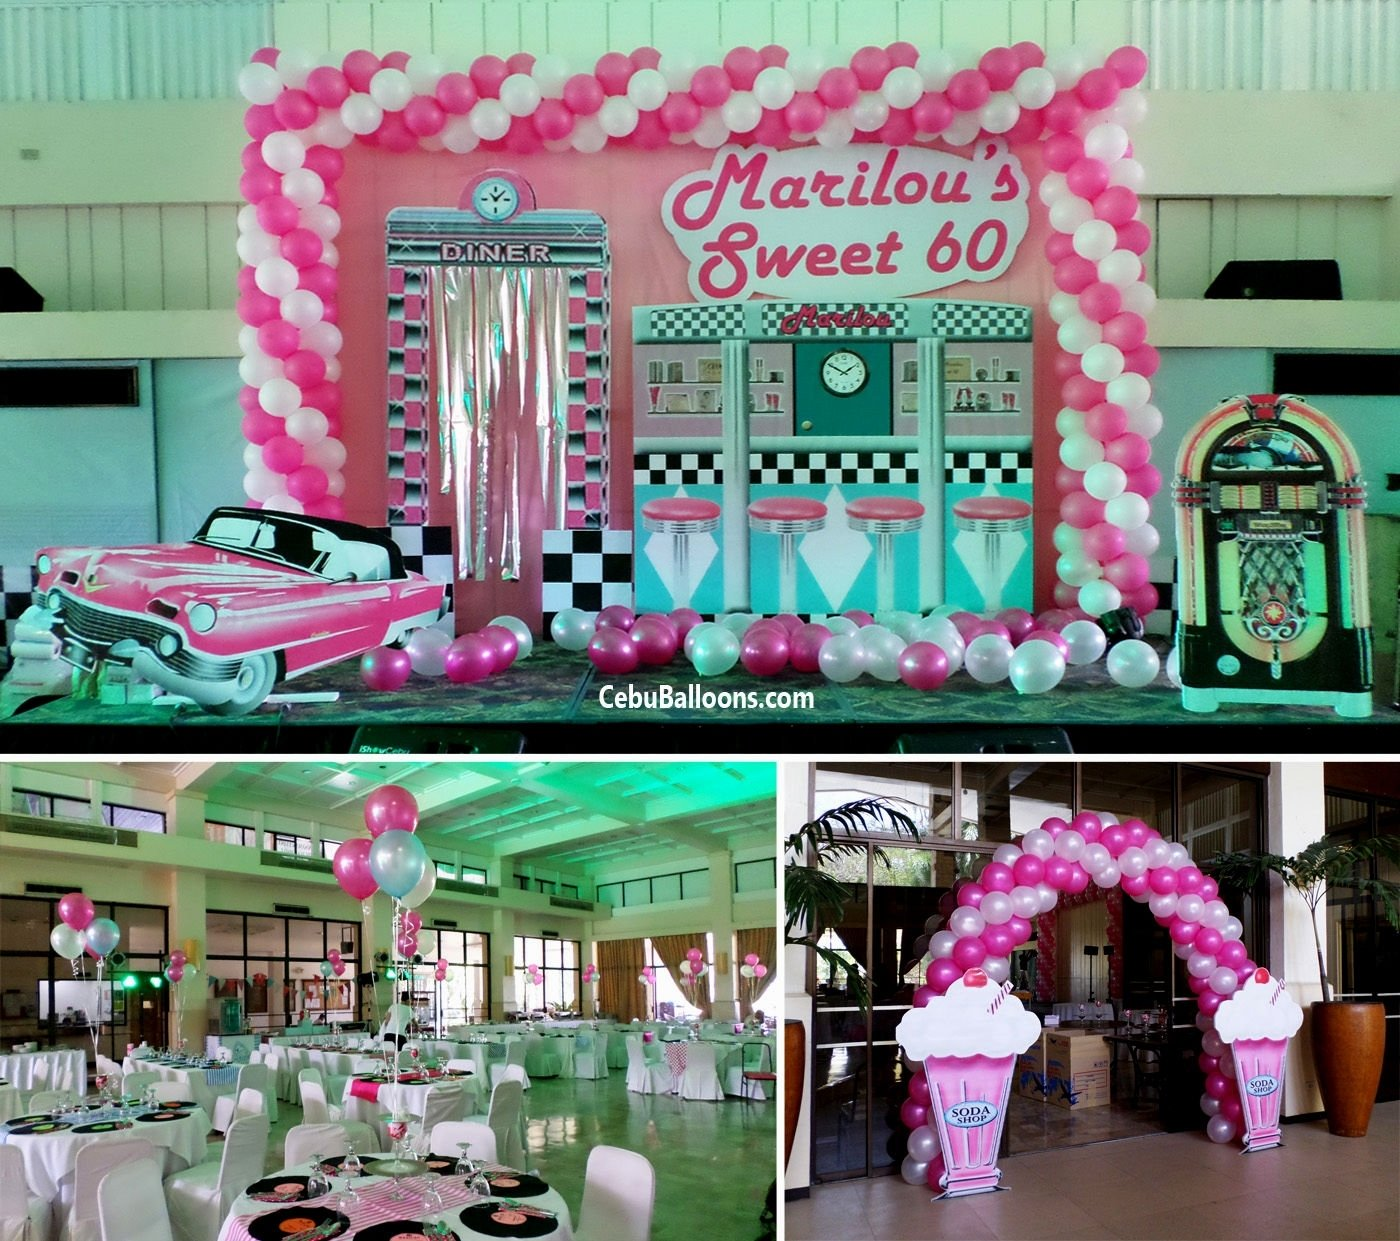 10 Wonderful Ideas For A 60Th Birthday 60th birthday party decorations ideas simply simple images of party 2020